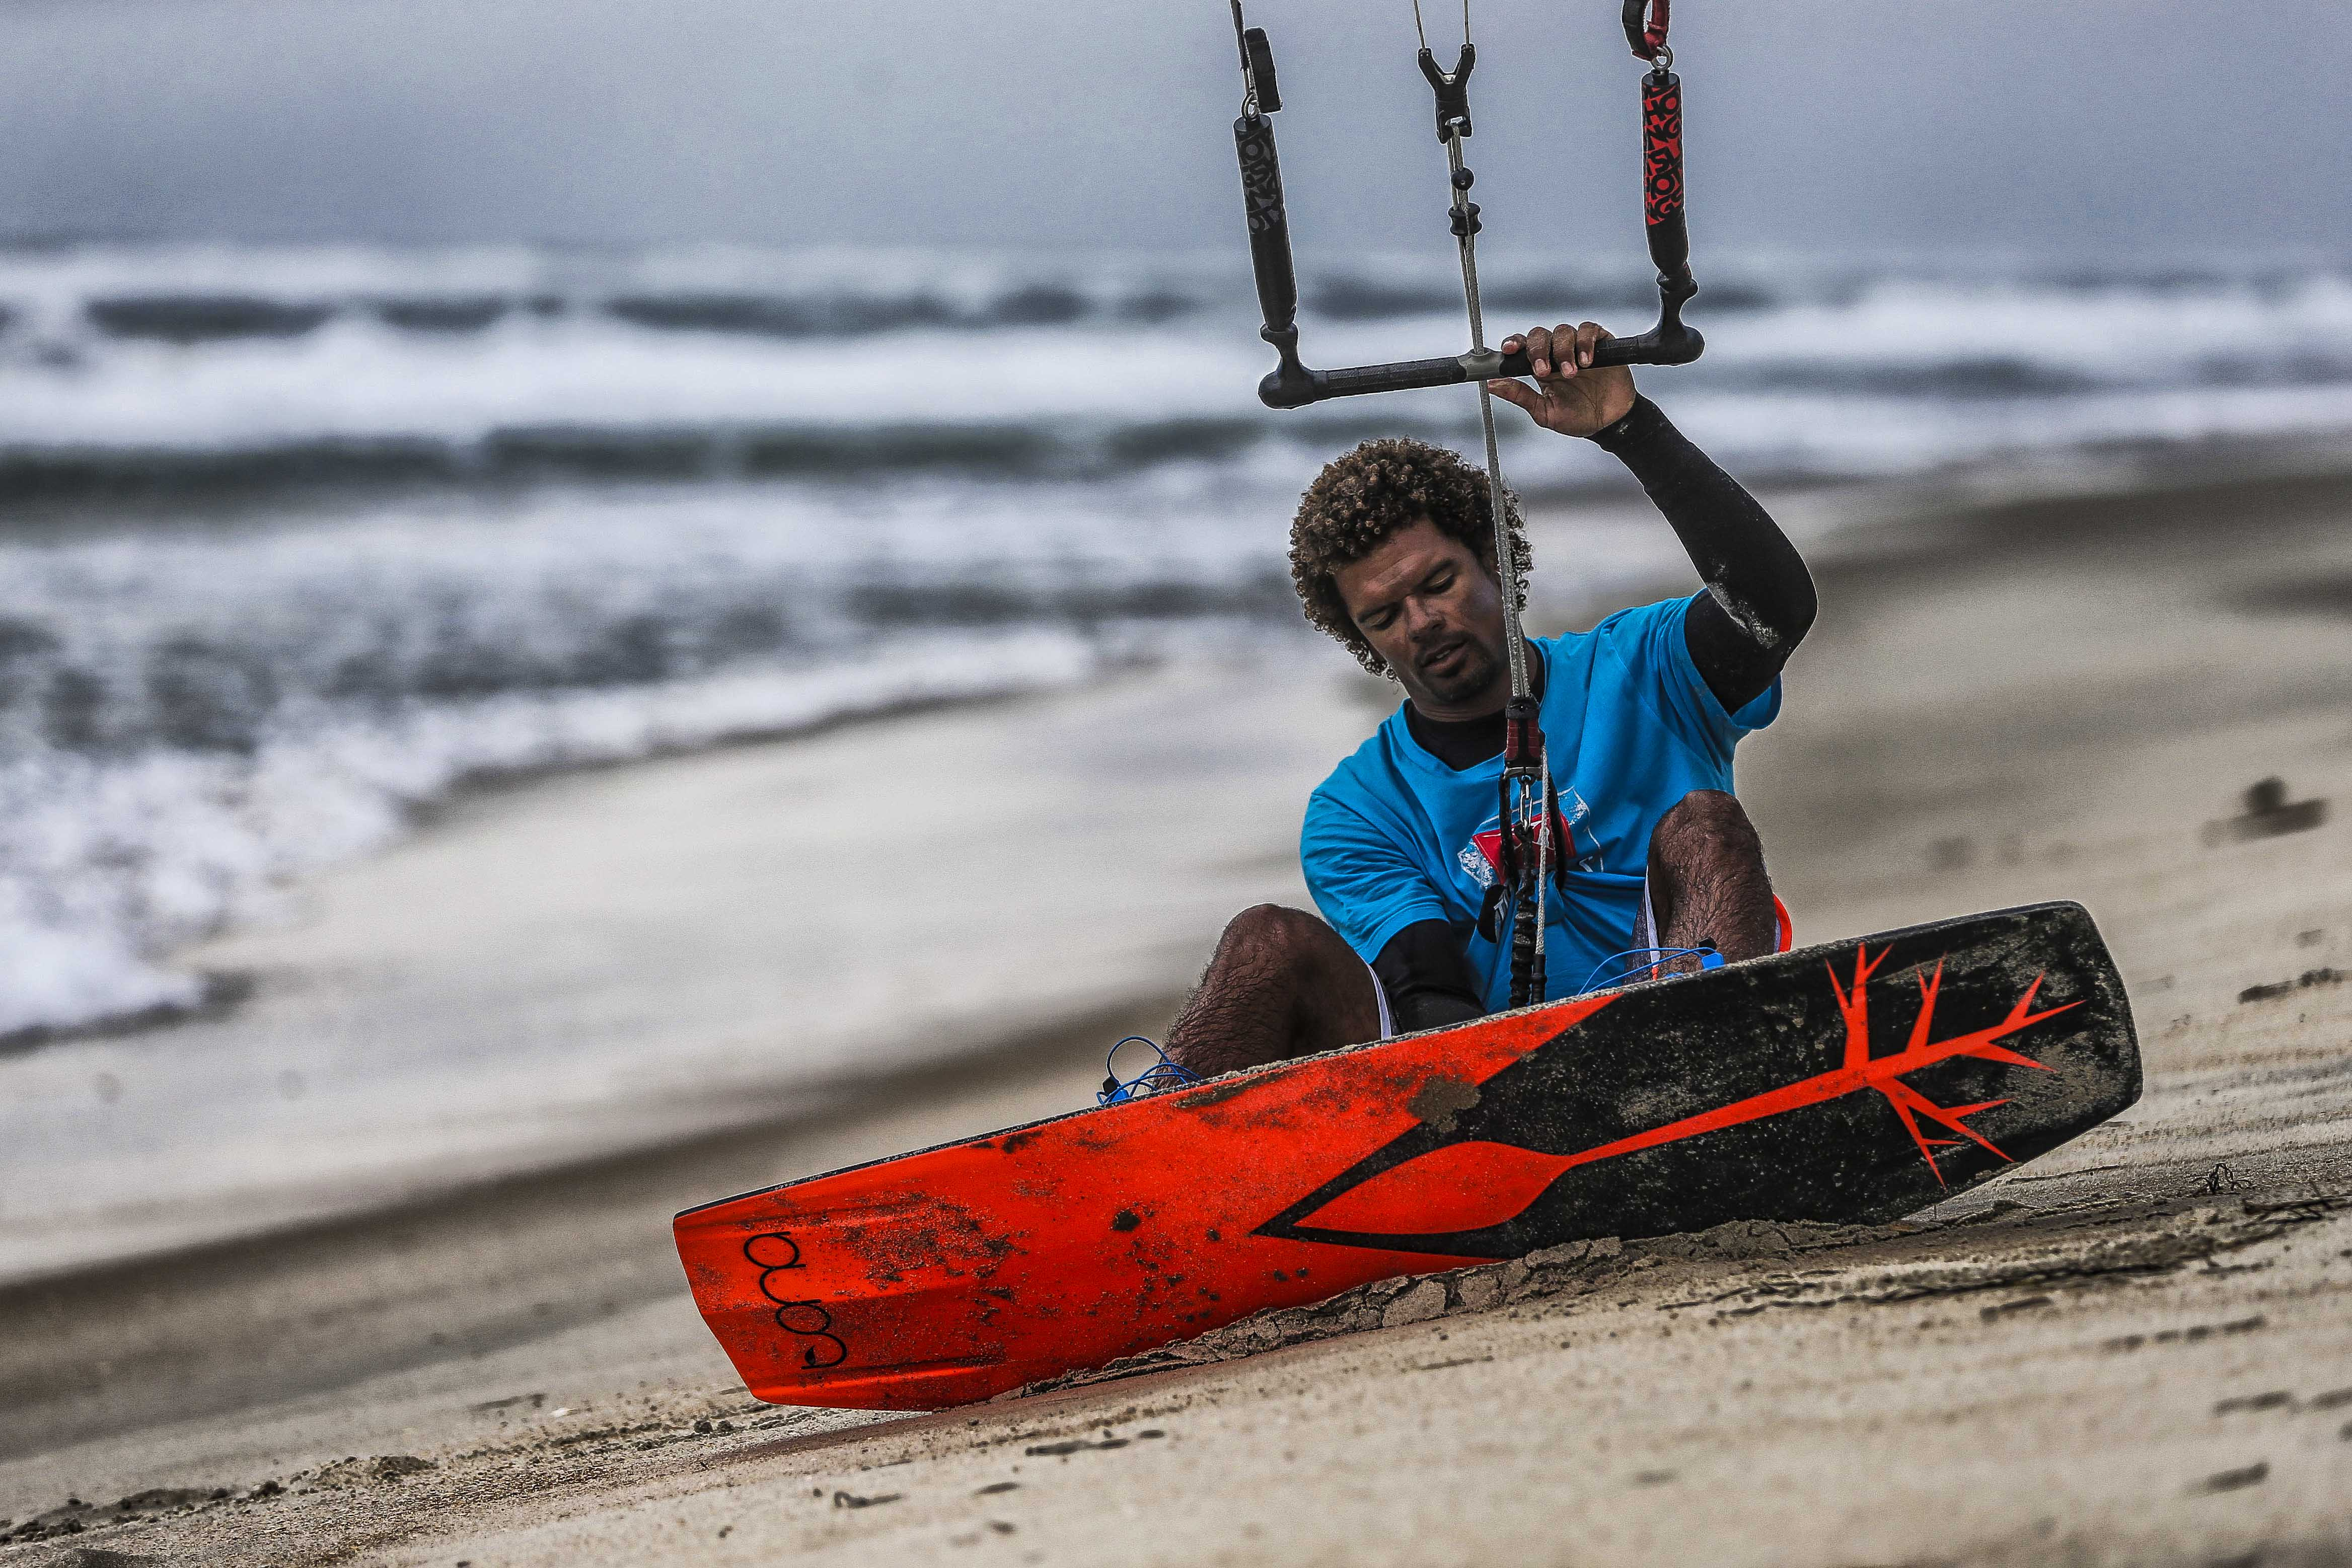 Triple S, Real Kiteboarding, Andre Phillip, Tona kiteboards